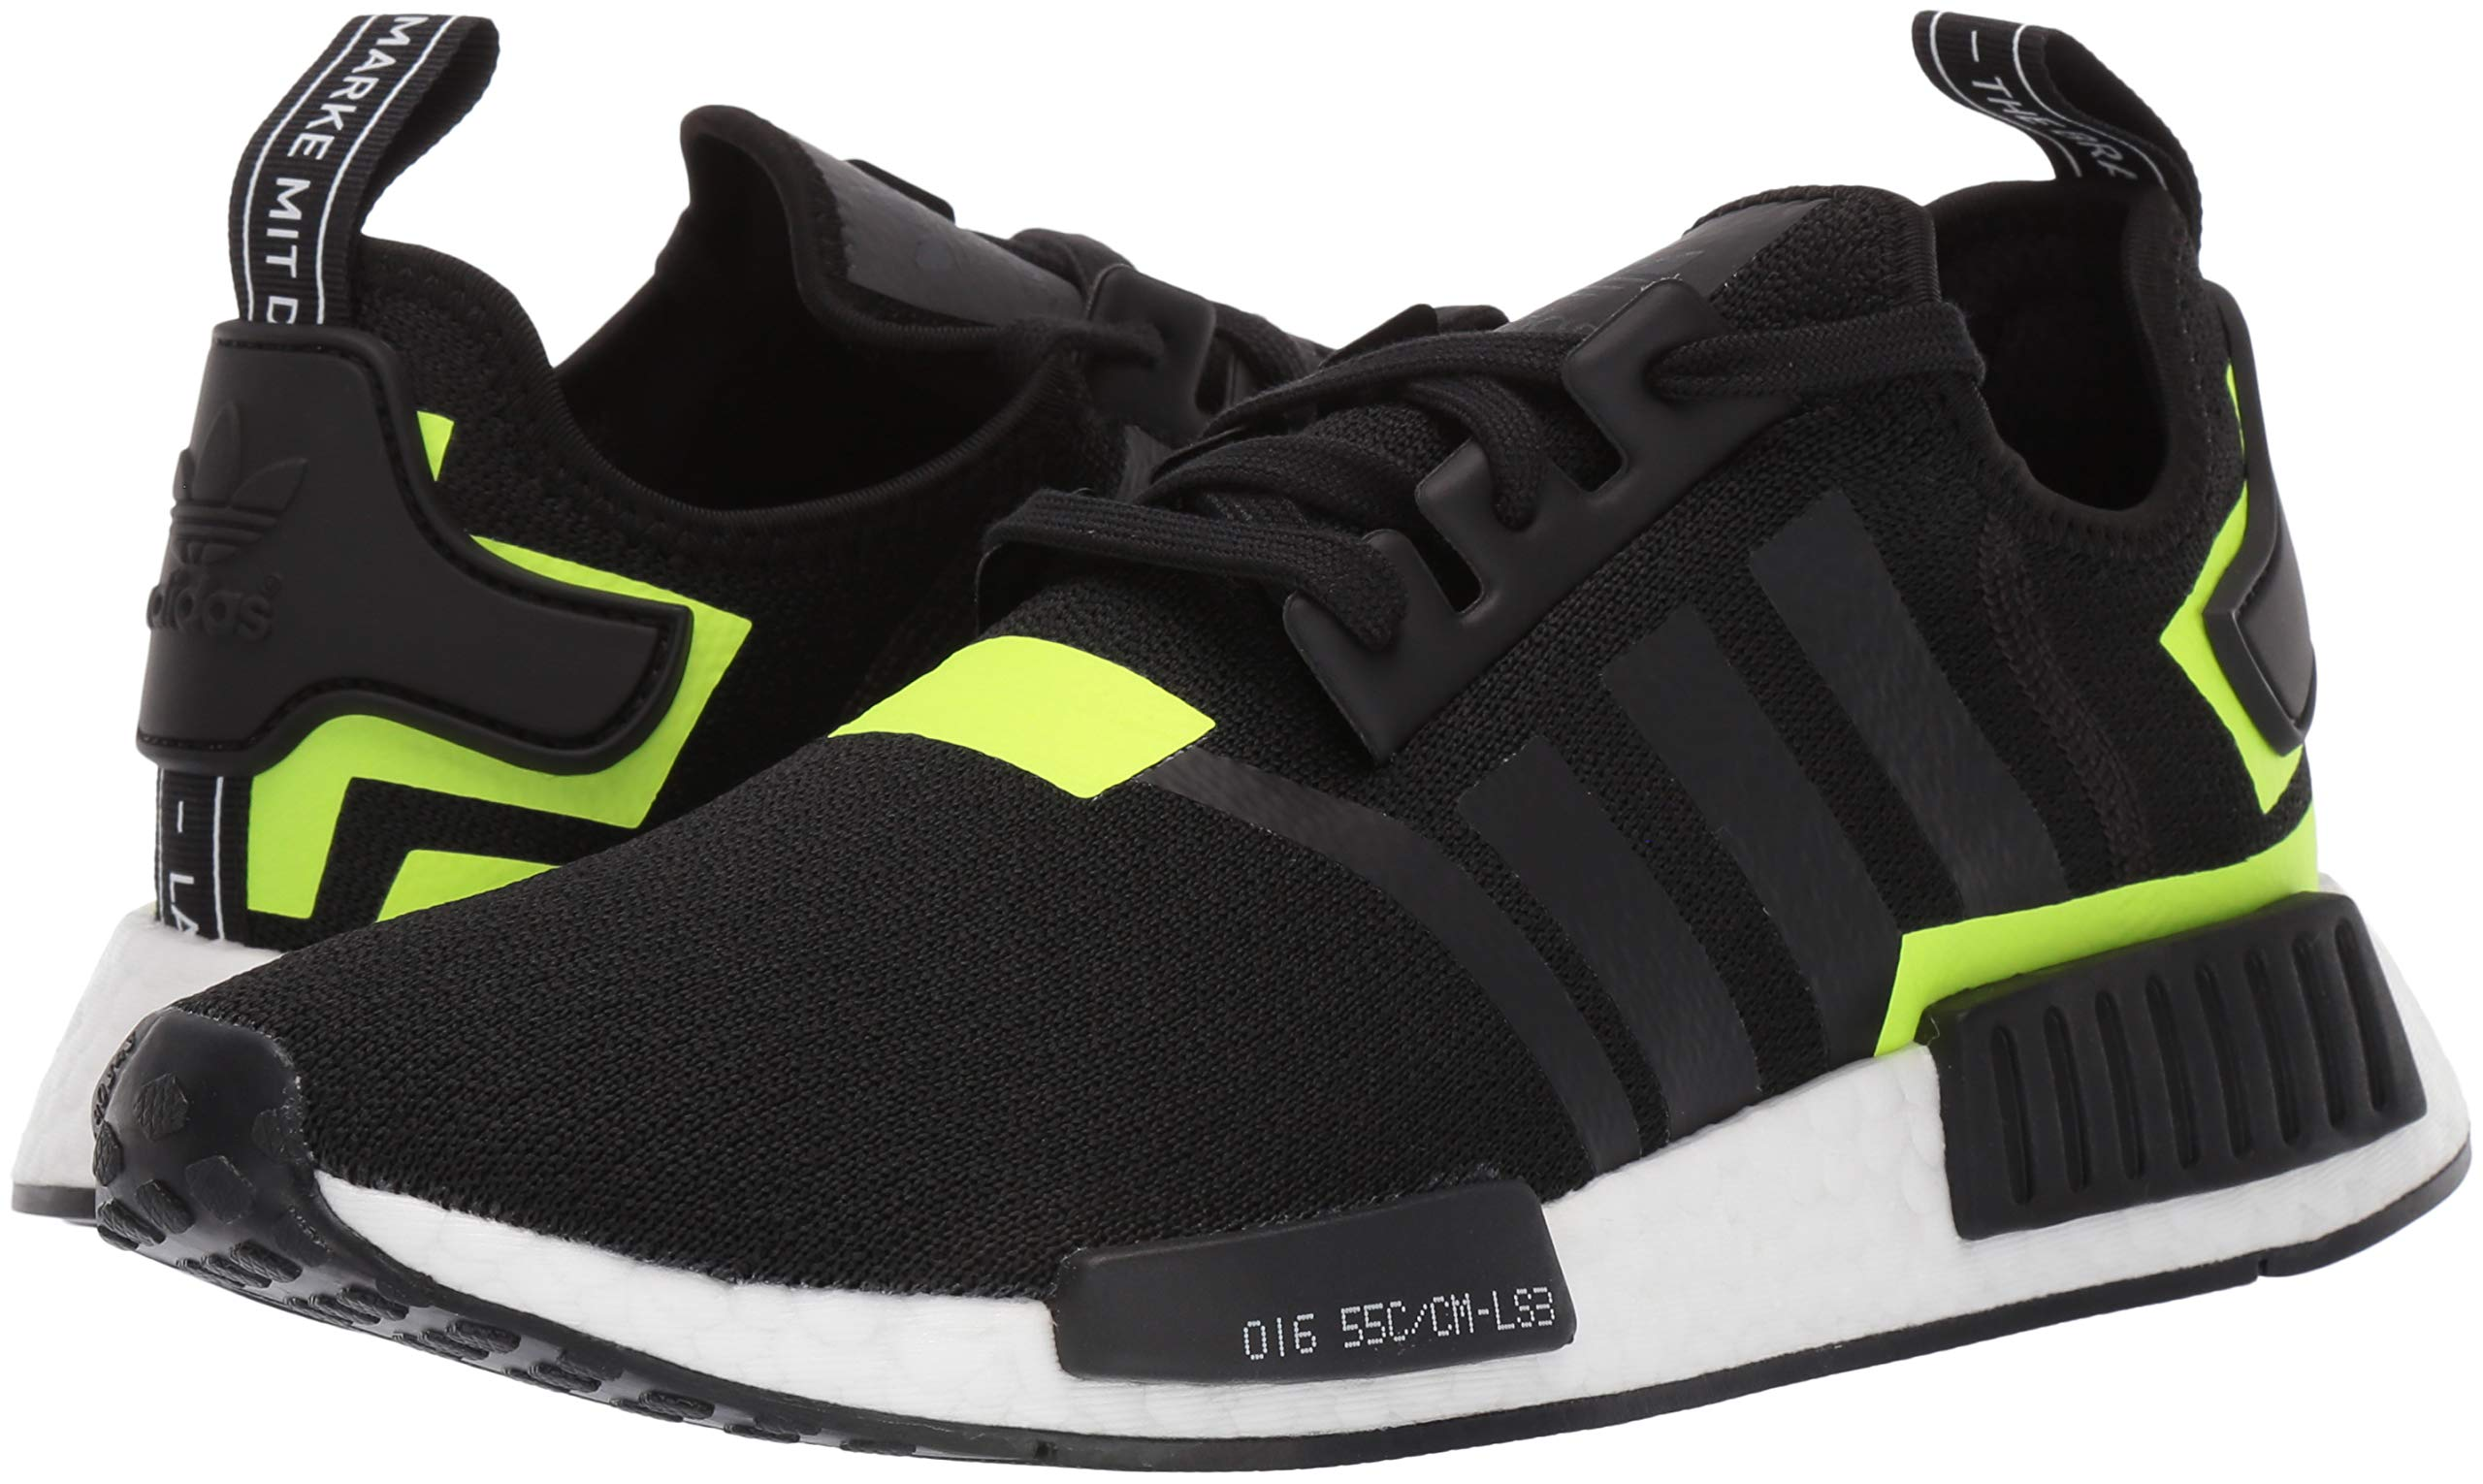 adidas Originals Men's NMD_R1 Running Shoe, Black/White 1, 4 M US by adidas Originals (Image #5)